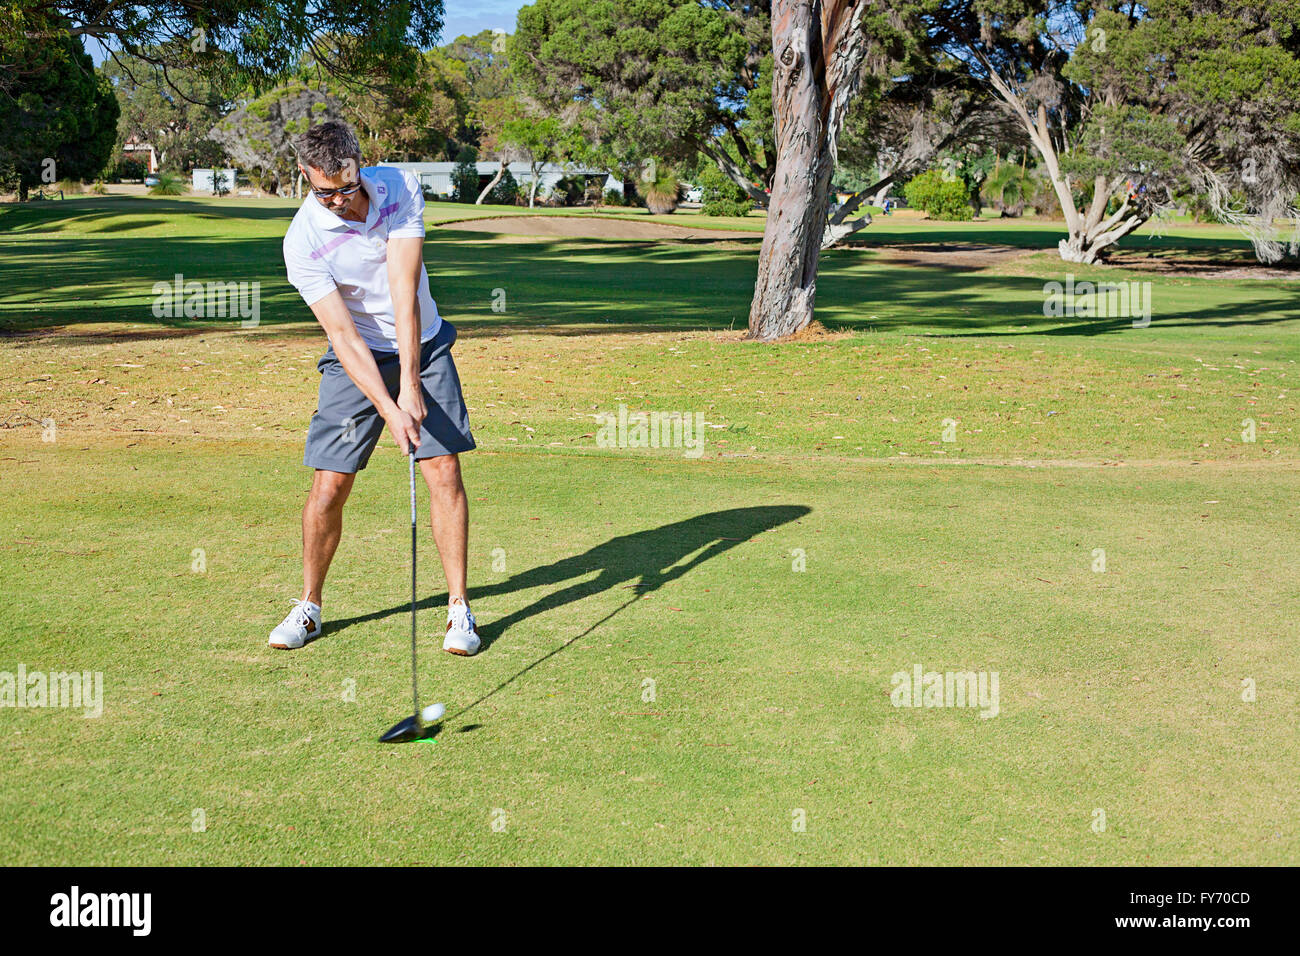 A golfer hitting the ball on a tee shot, teeing off, Perth, Australia - Stock Image